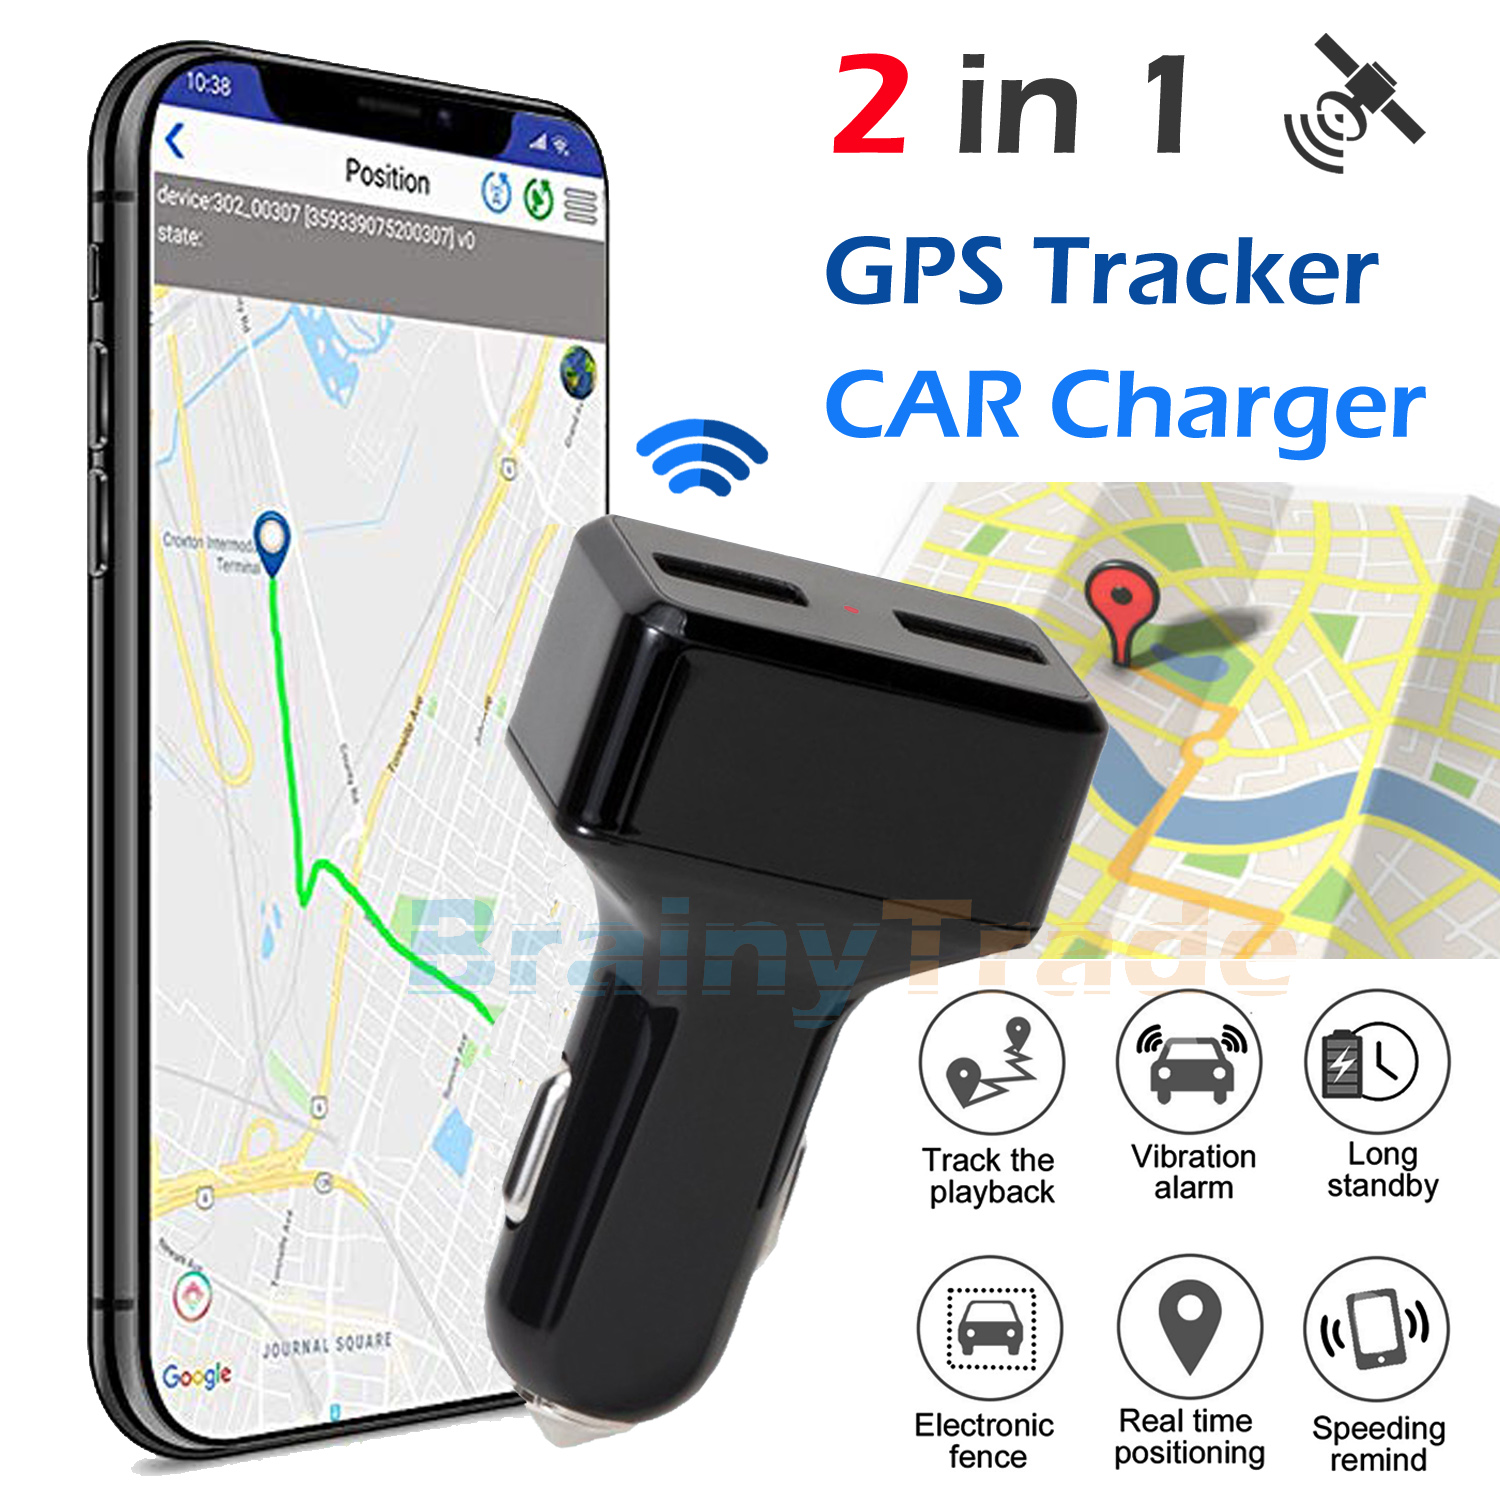 Vehicle Tracking Device >> Details About Real Time Vehicle Tracking Device Car Gps Tracker Usb Charger With Live Audio